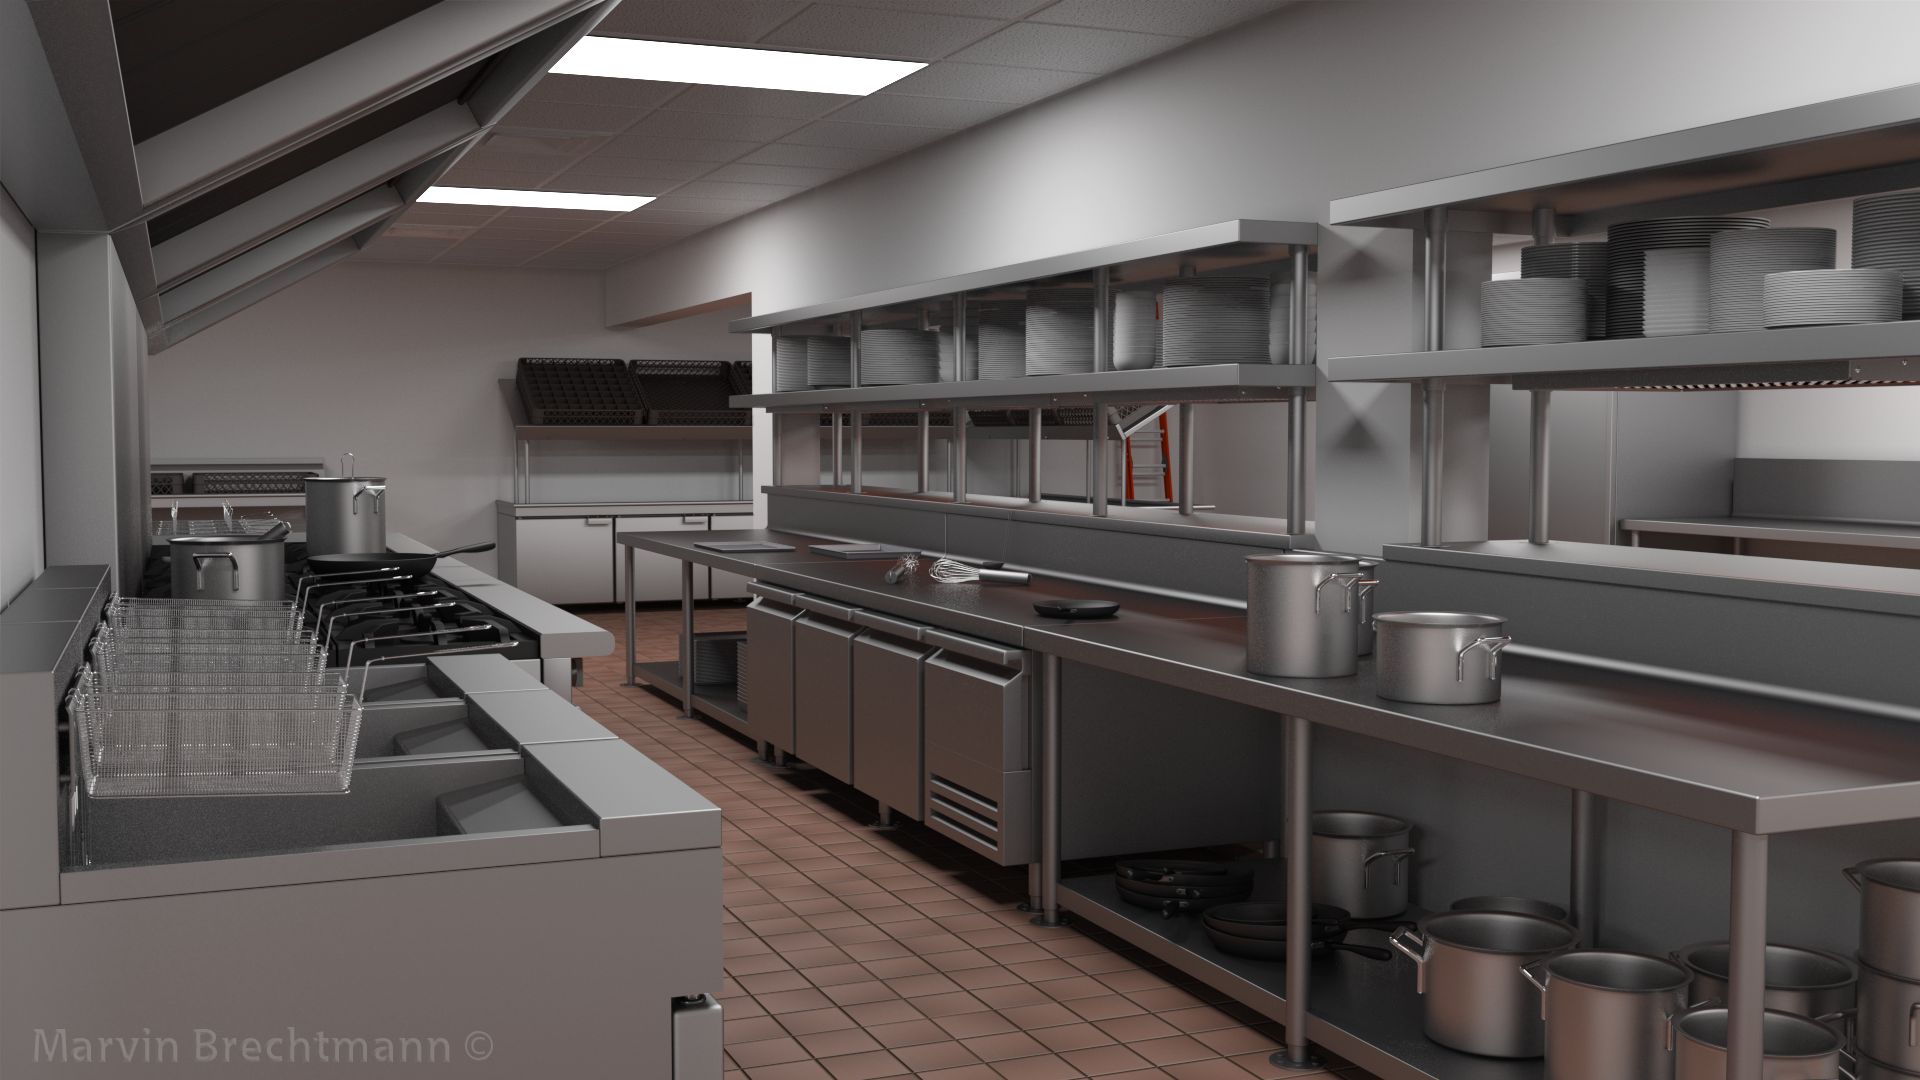 Marvin brechtmann 3d artist for V kitchen restaurant